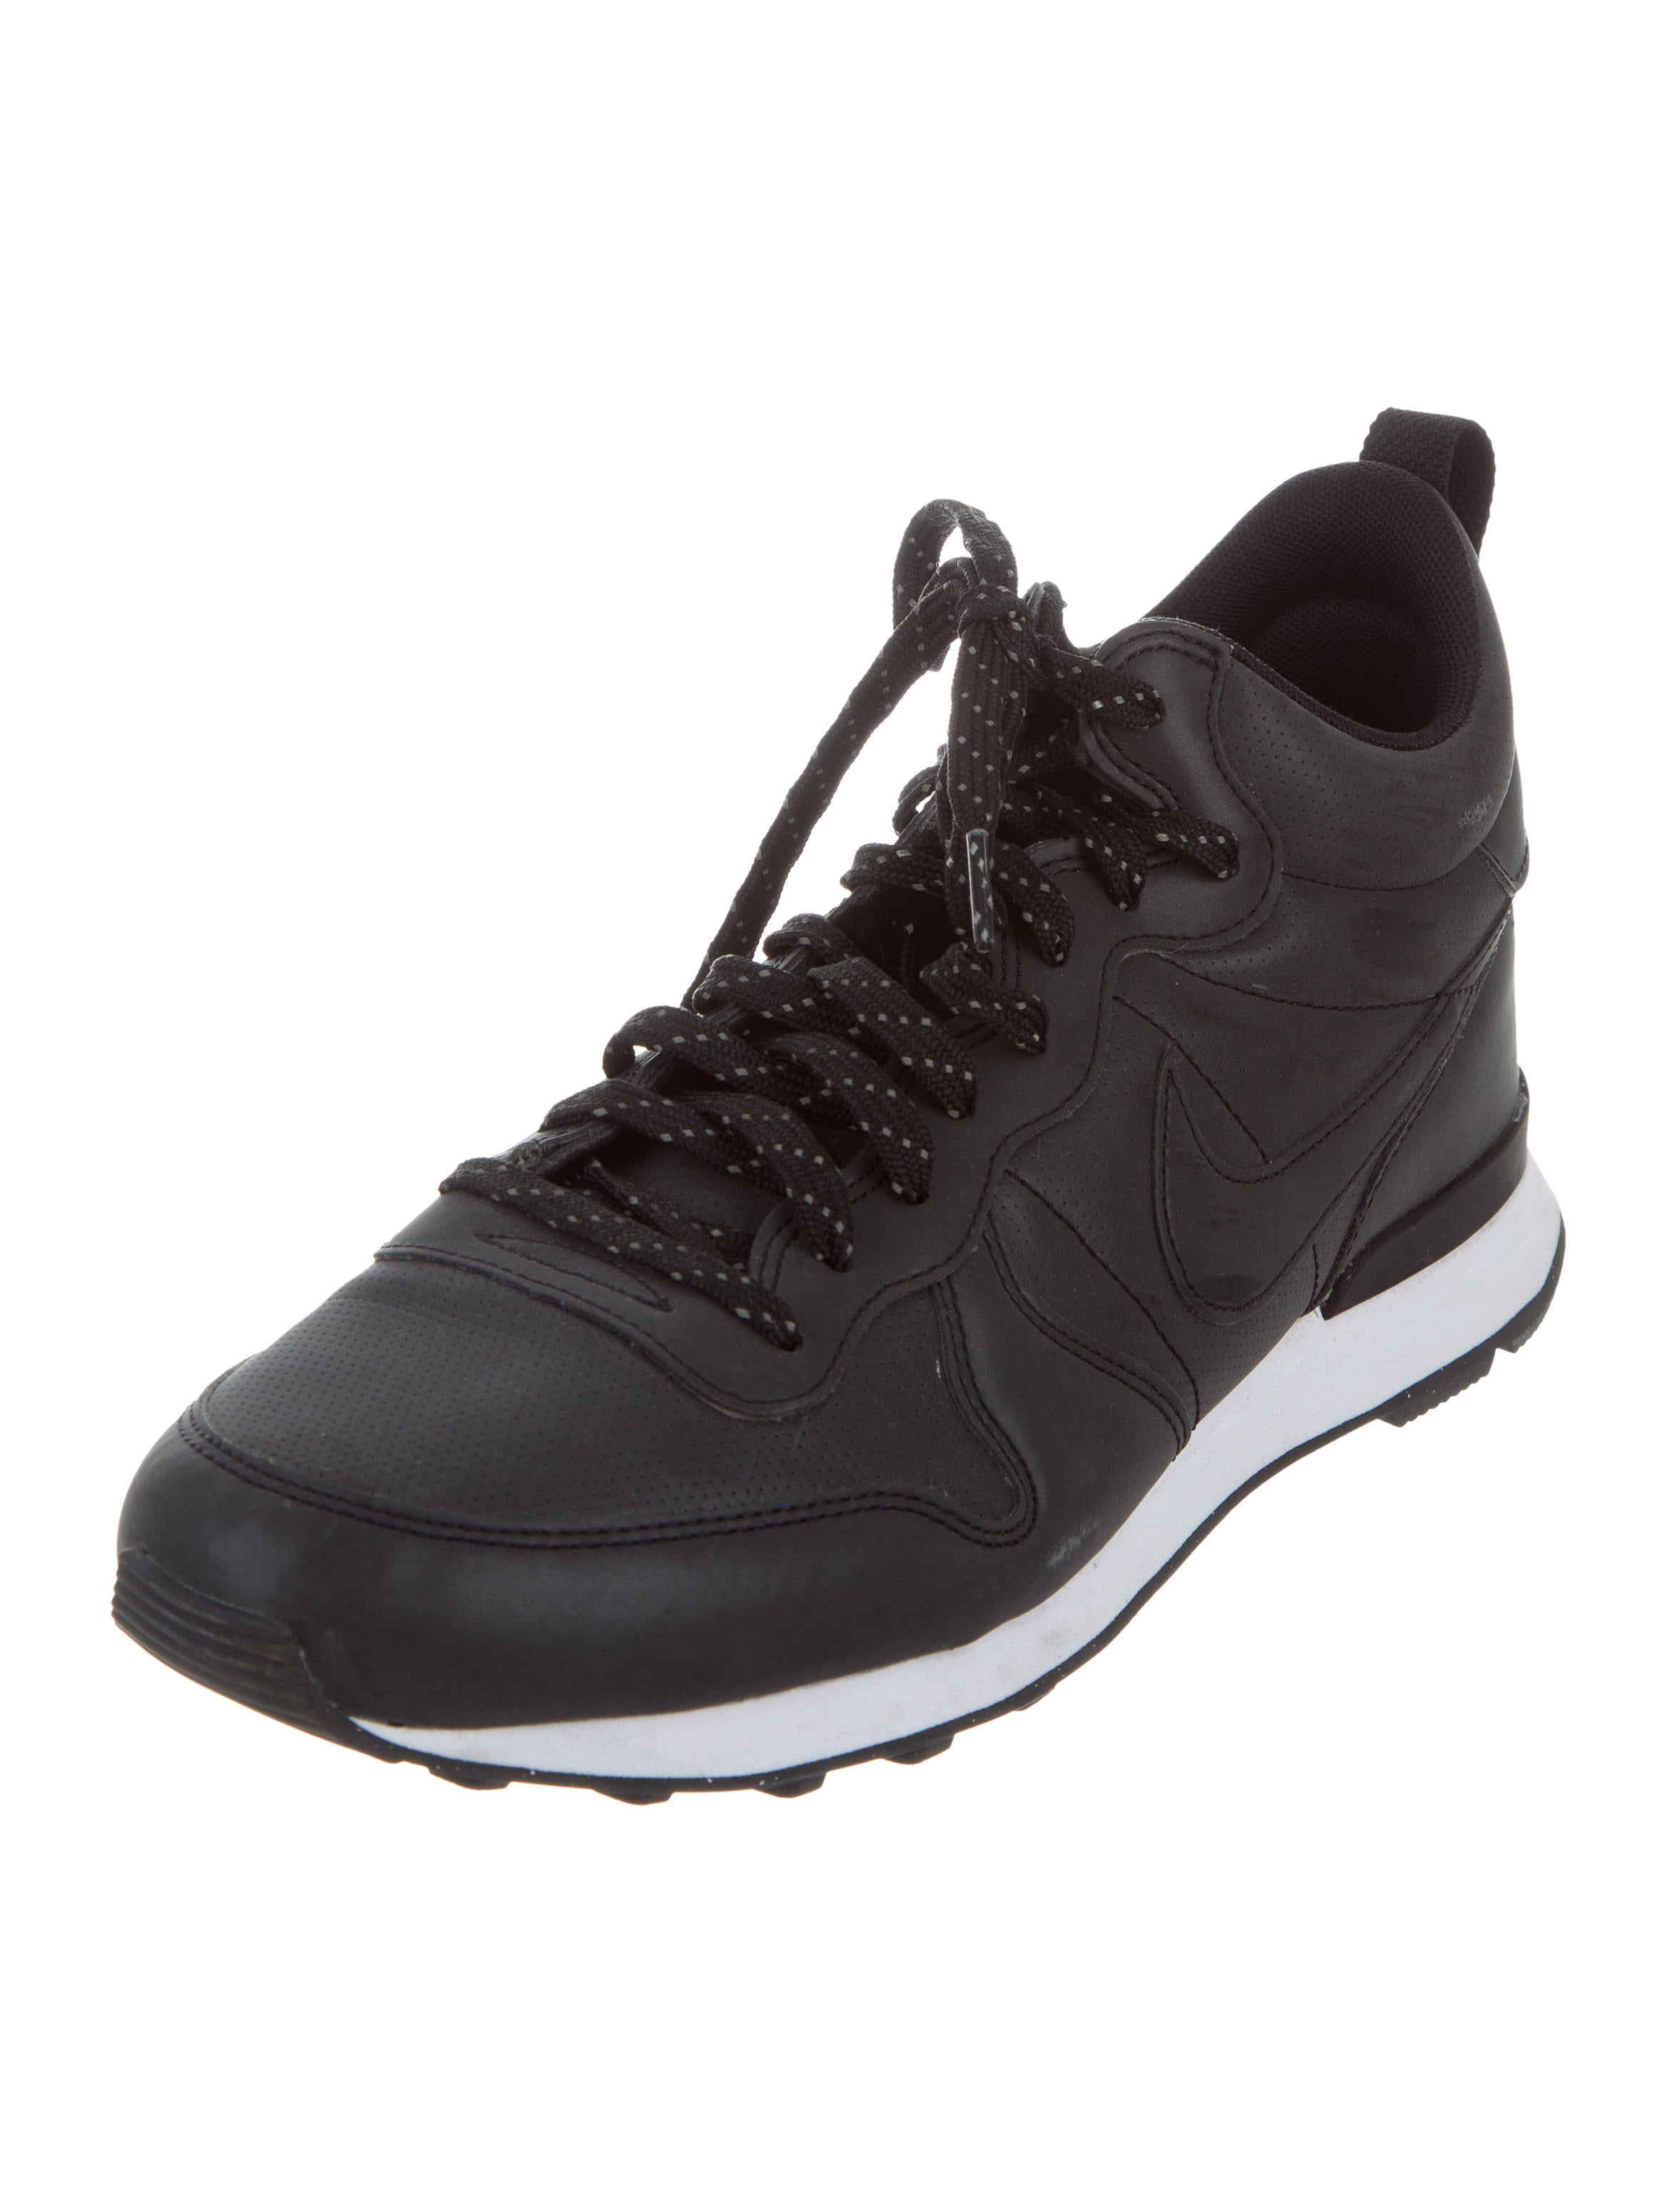 Nike Low-Top Running Sneakers - Shoes - WU221247 | The RealReal